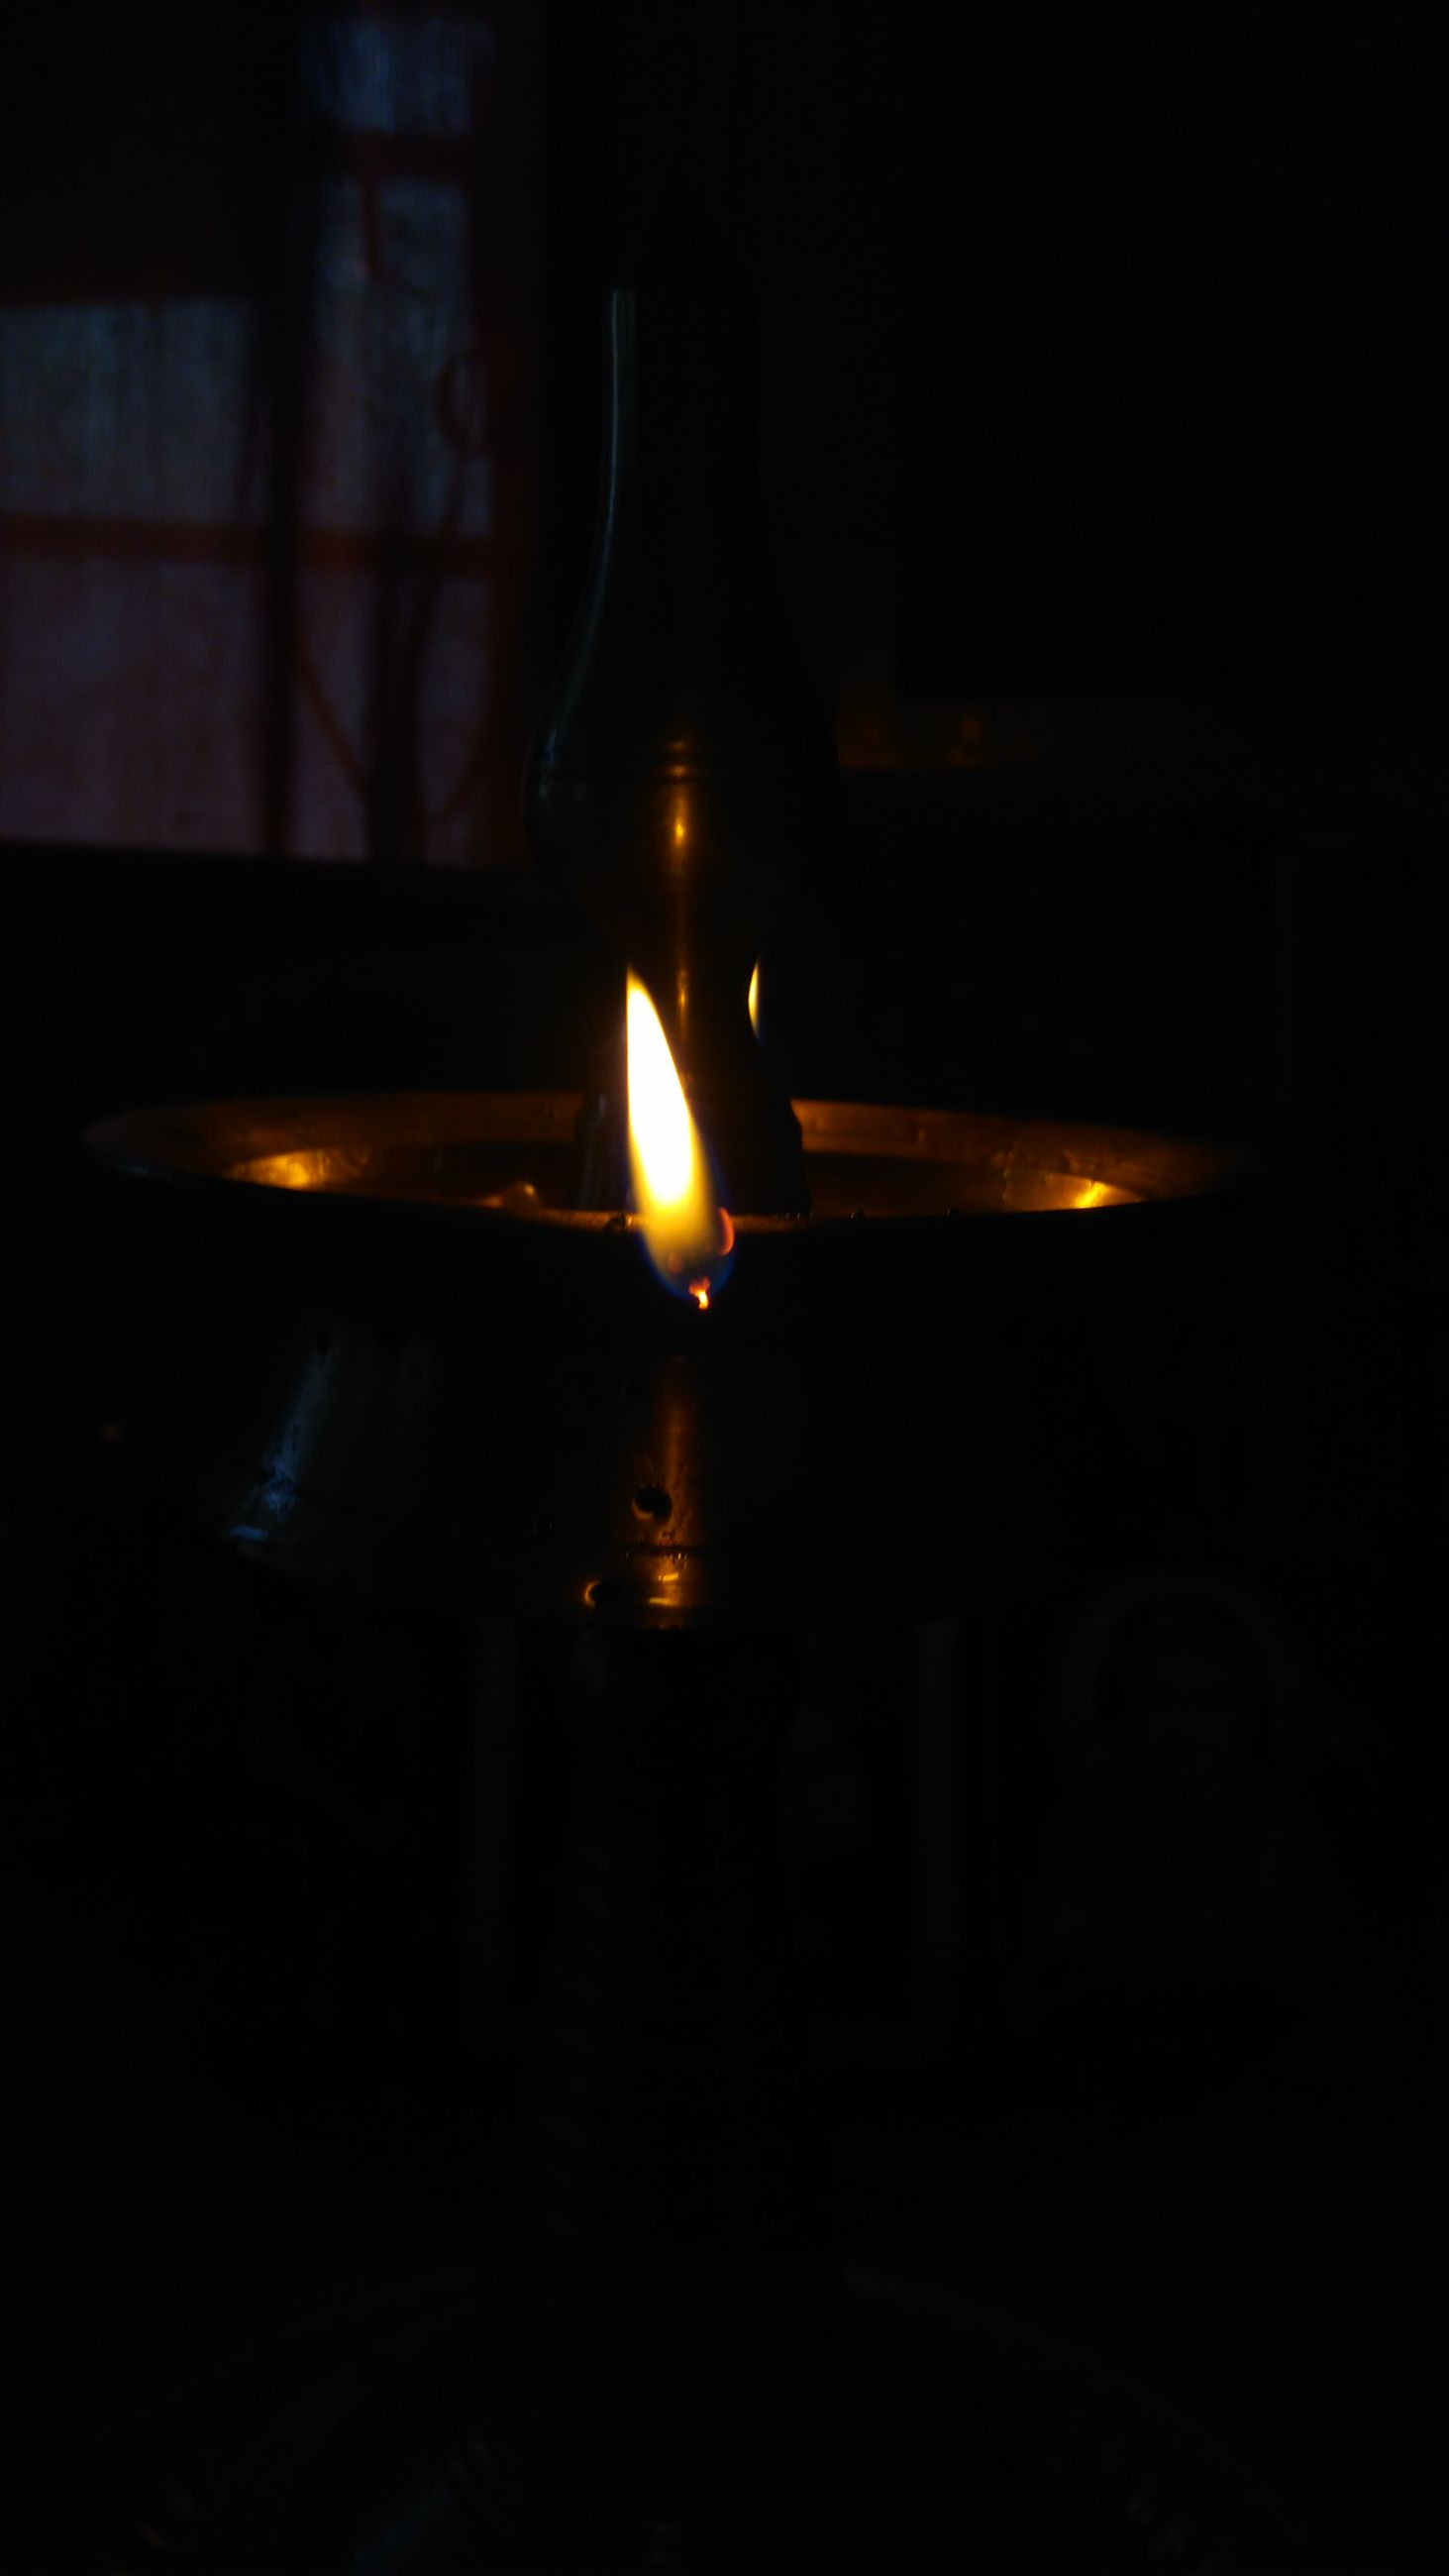 illuminated, night, indoors, dark, lit, lighting equipment, light - natural phenomenon, glowing, flame, darkroom, burning, candle, close-up, no people, light, copy space, table, fire - natural phenomenon, reflection, darkness